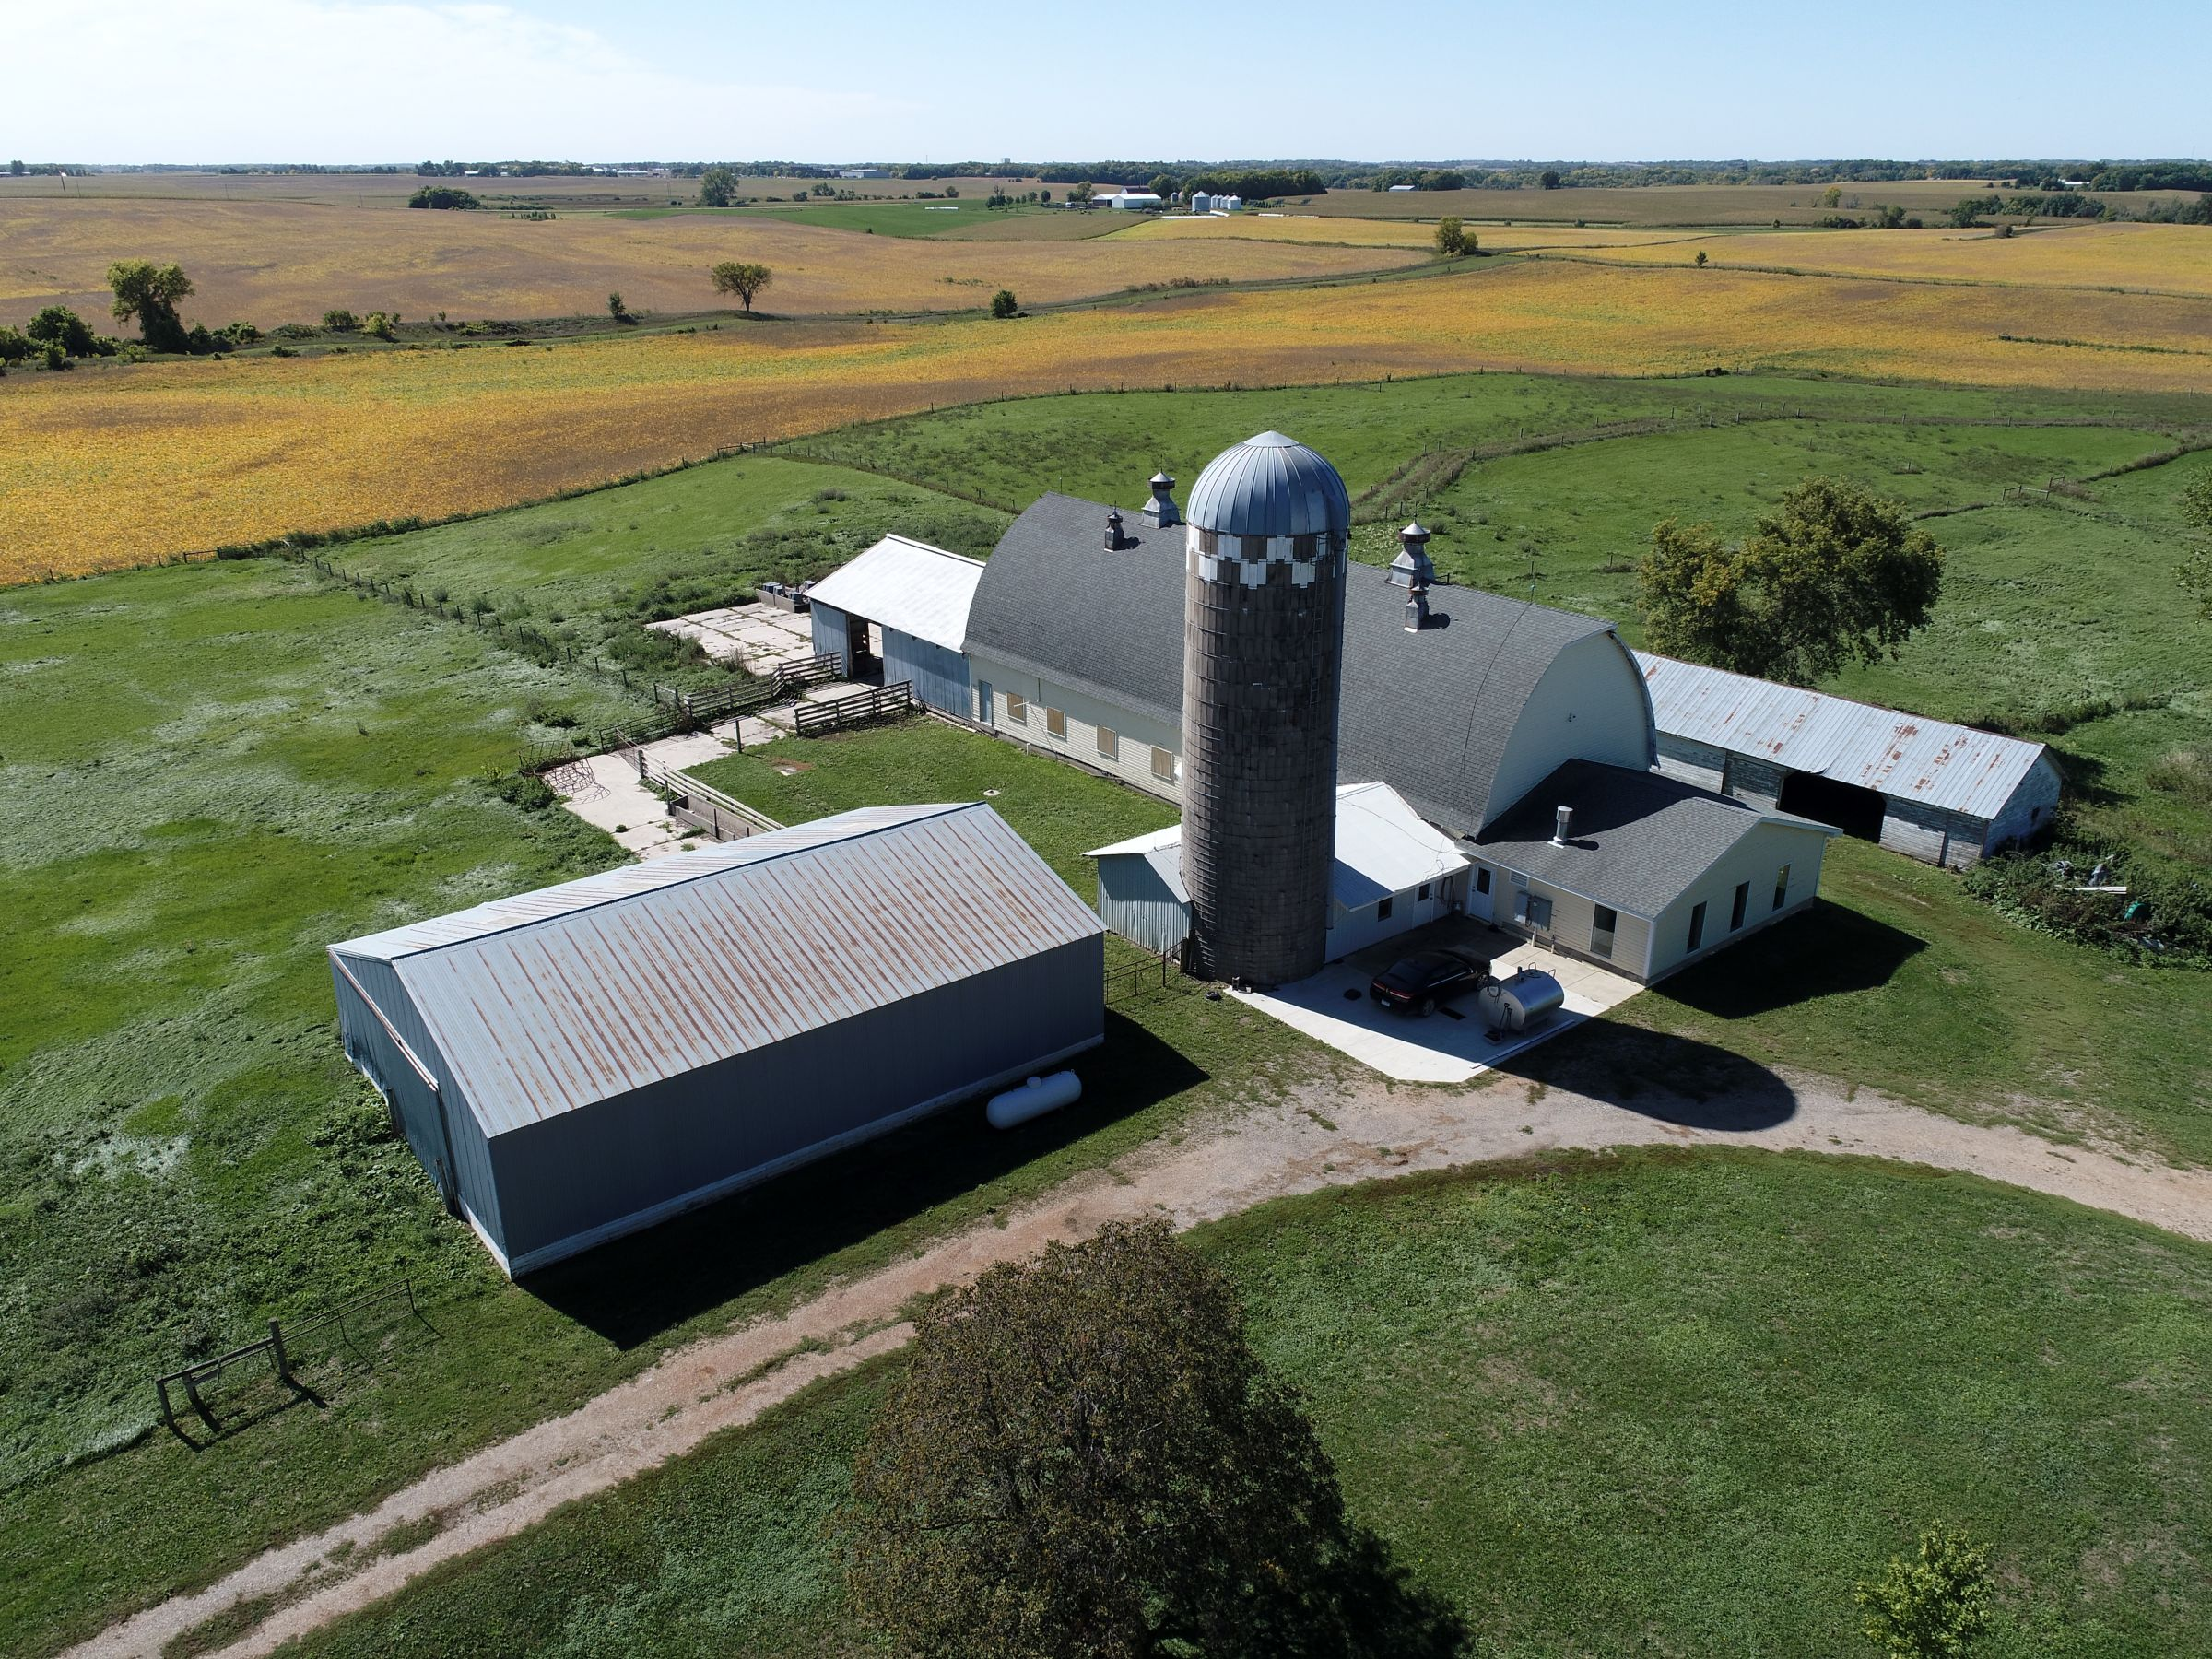 residential-wright-county-minnesota-0-acres-listing-number-15779-0-2021-09-27-235655.JPG